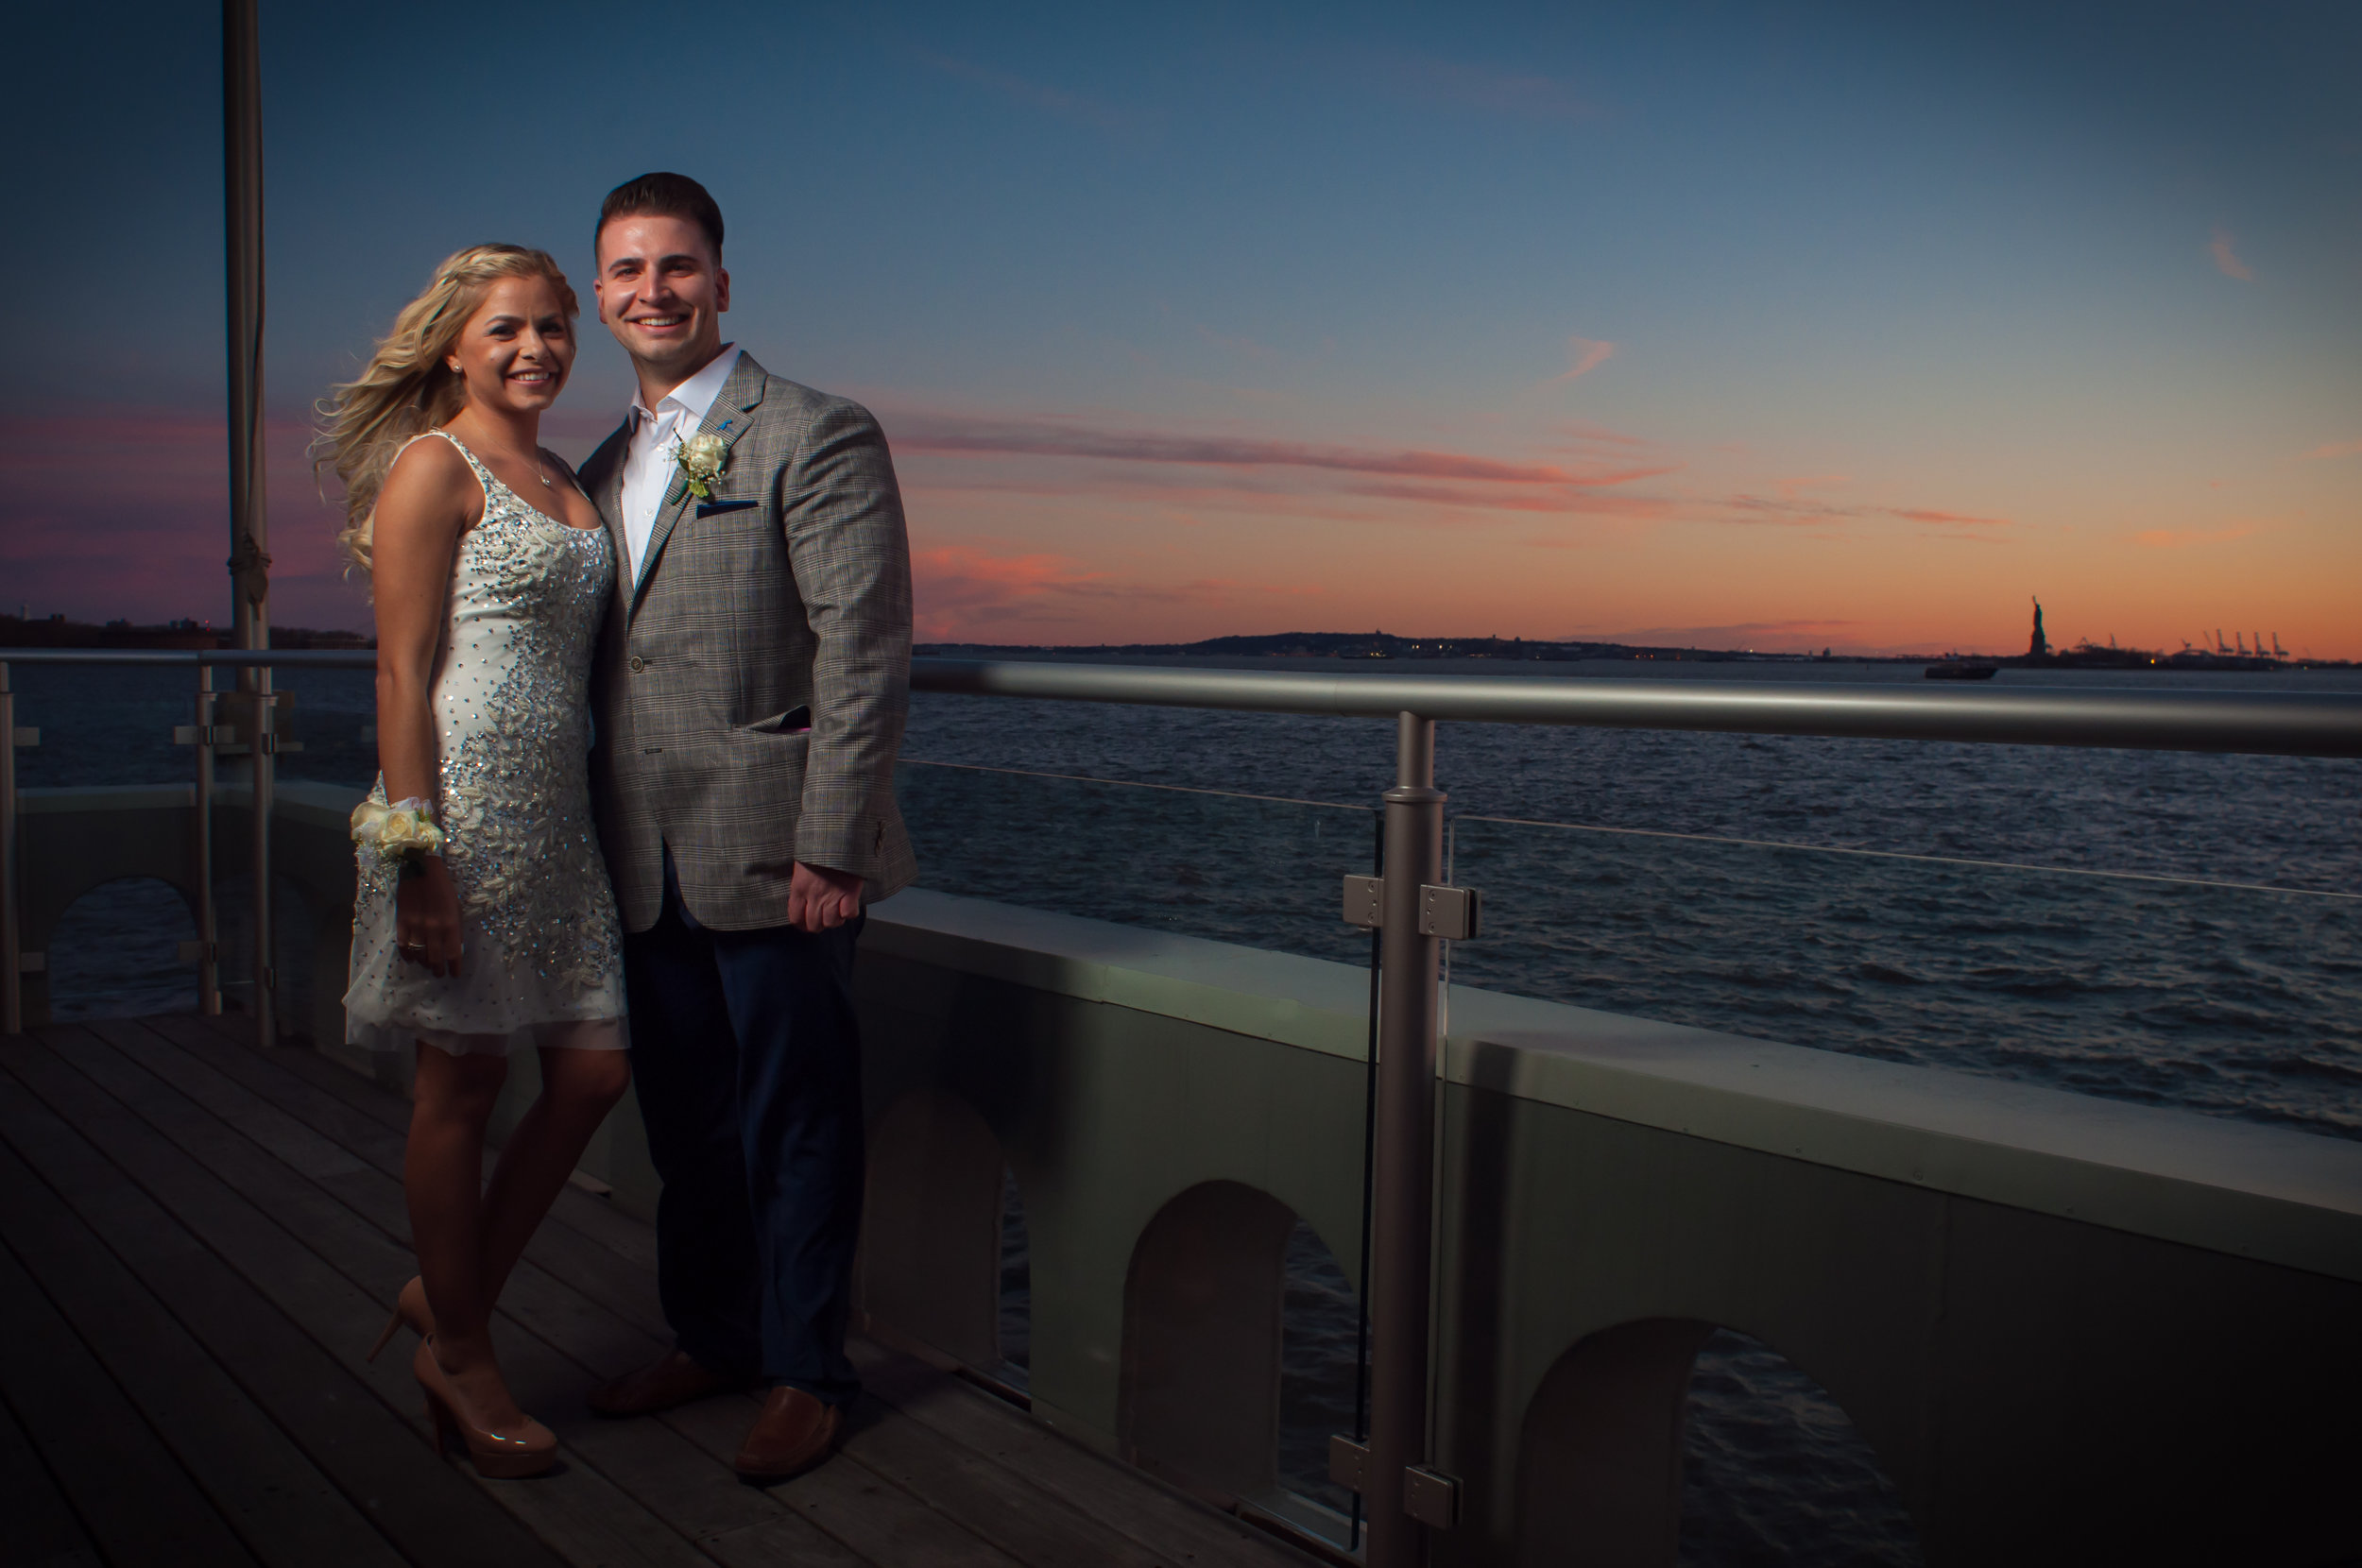 CarrieWestonStudios_Northport_Engagement_Wedding_Portraits_NY_Photography_Photographer--2.jpg